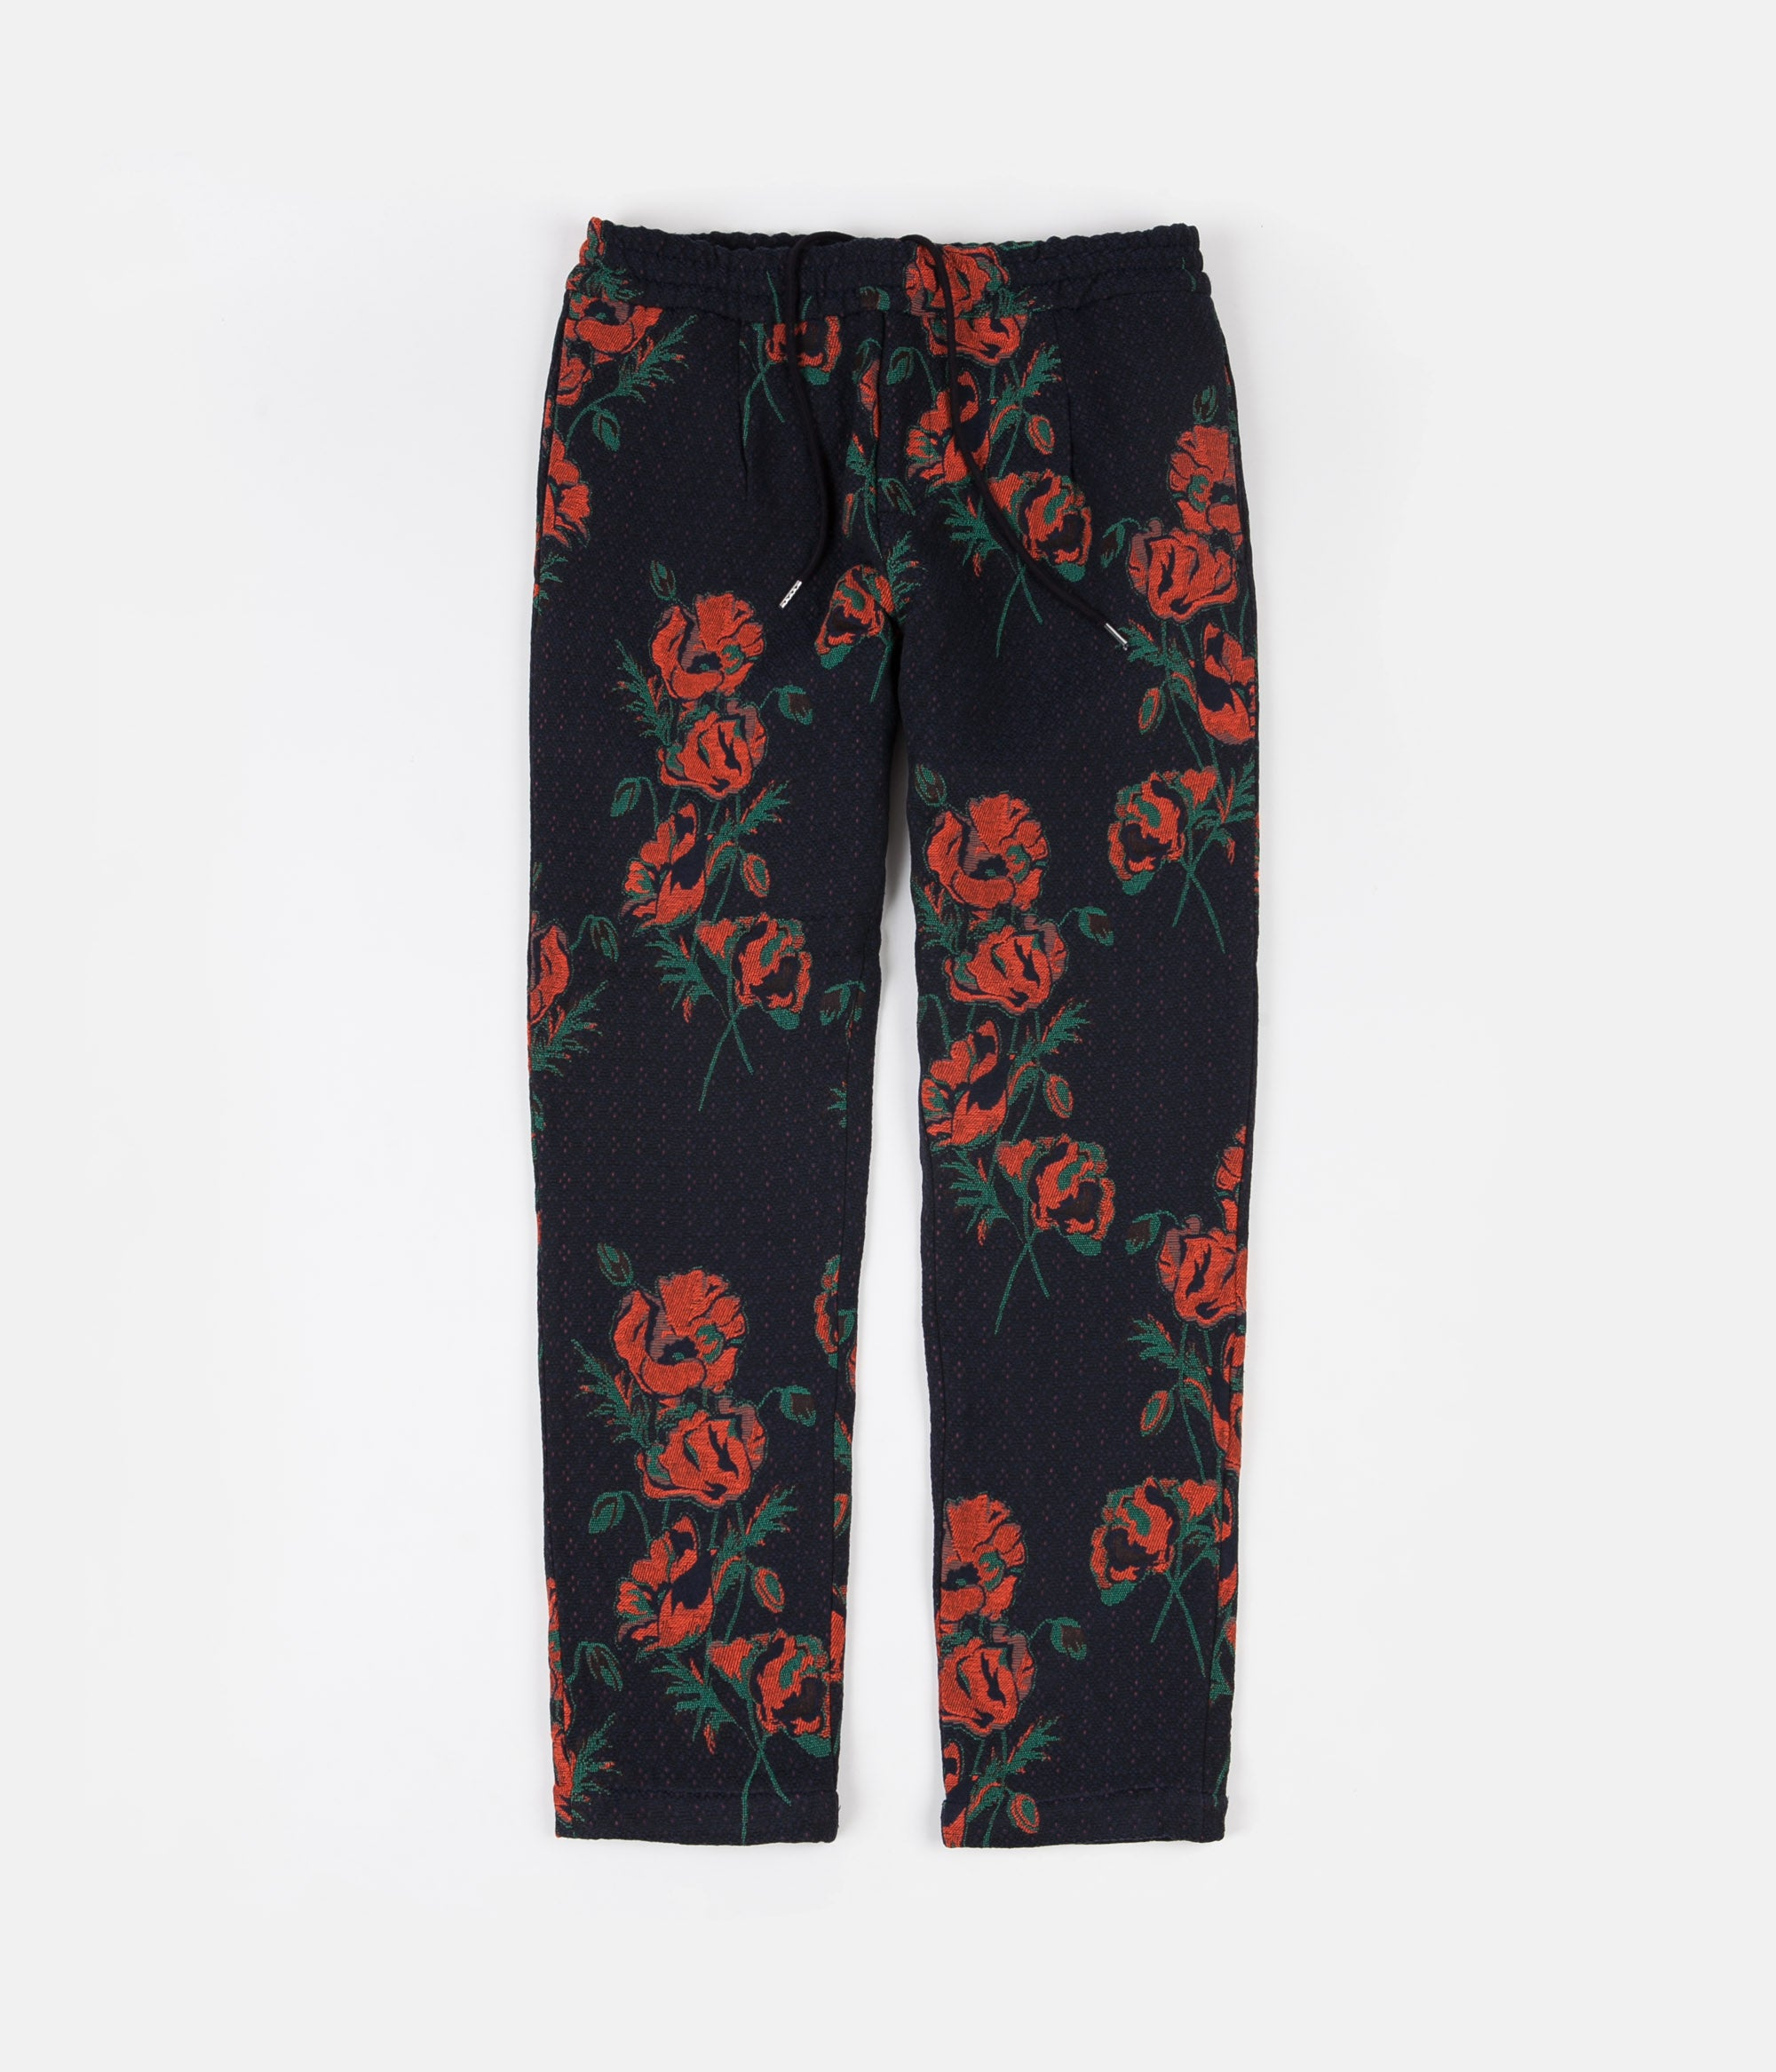 Soulland Sydow Relaxed Jacquard Pants - Multi